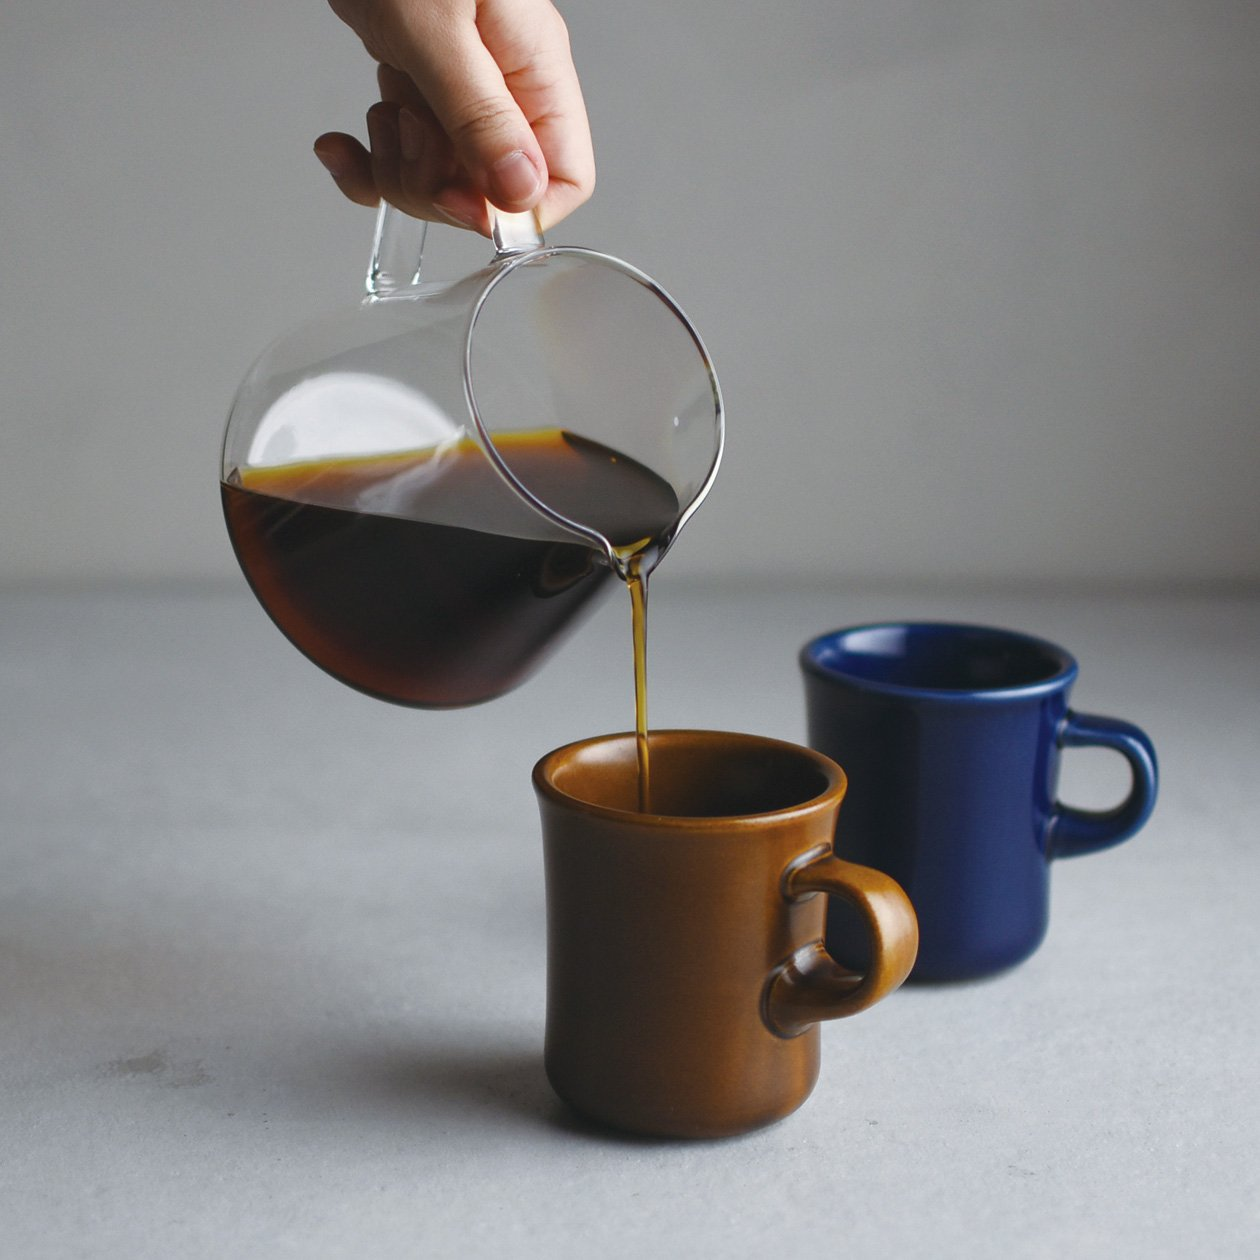 kinto-products-slow-coffee-style-specialty-lifestyle-12_1440x